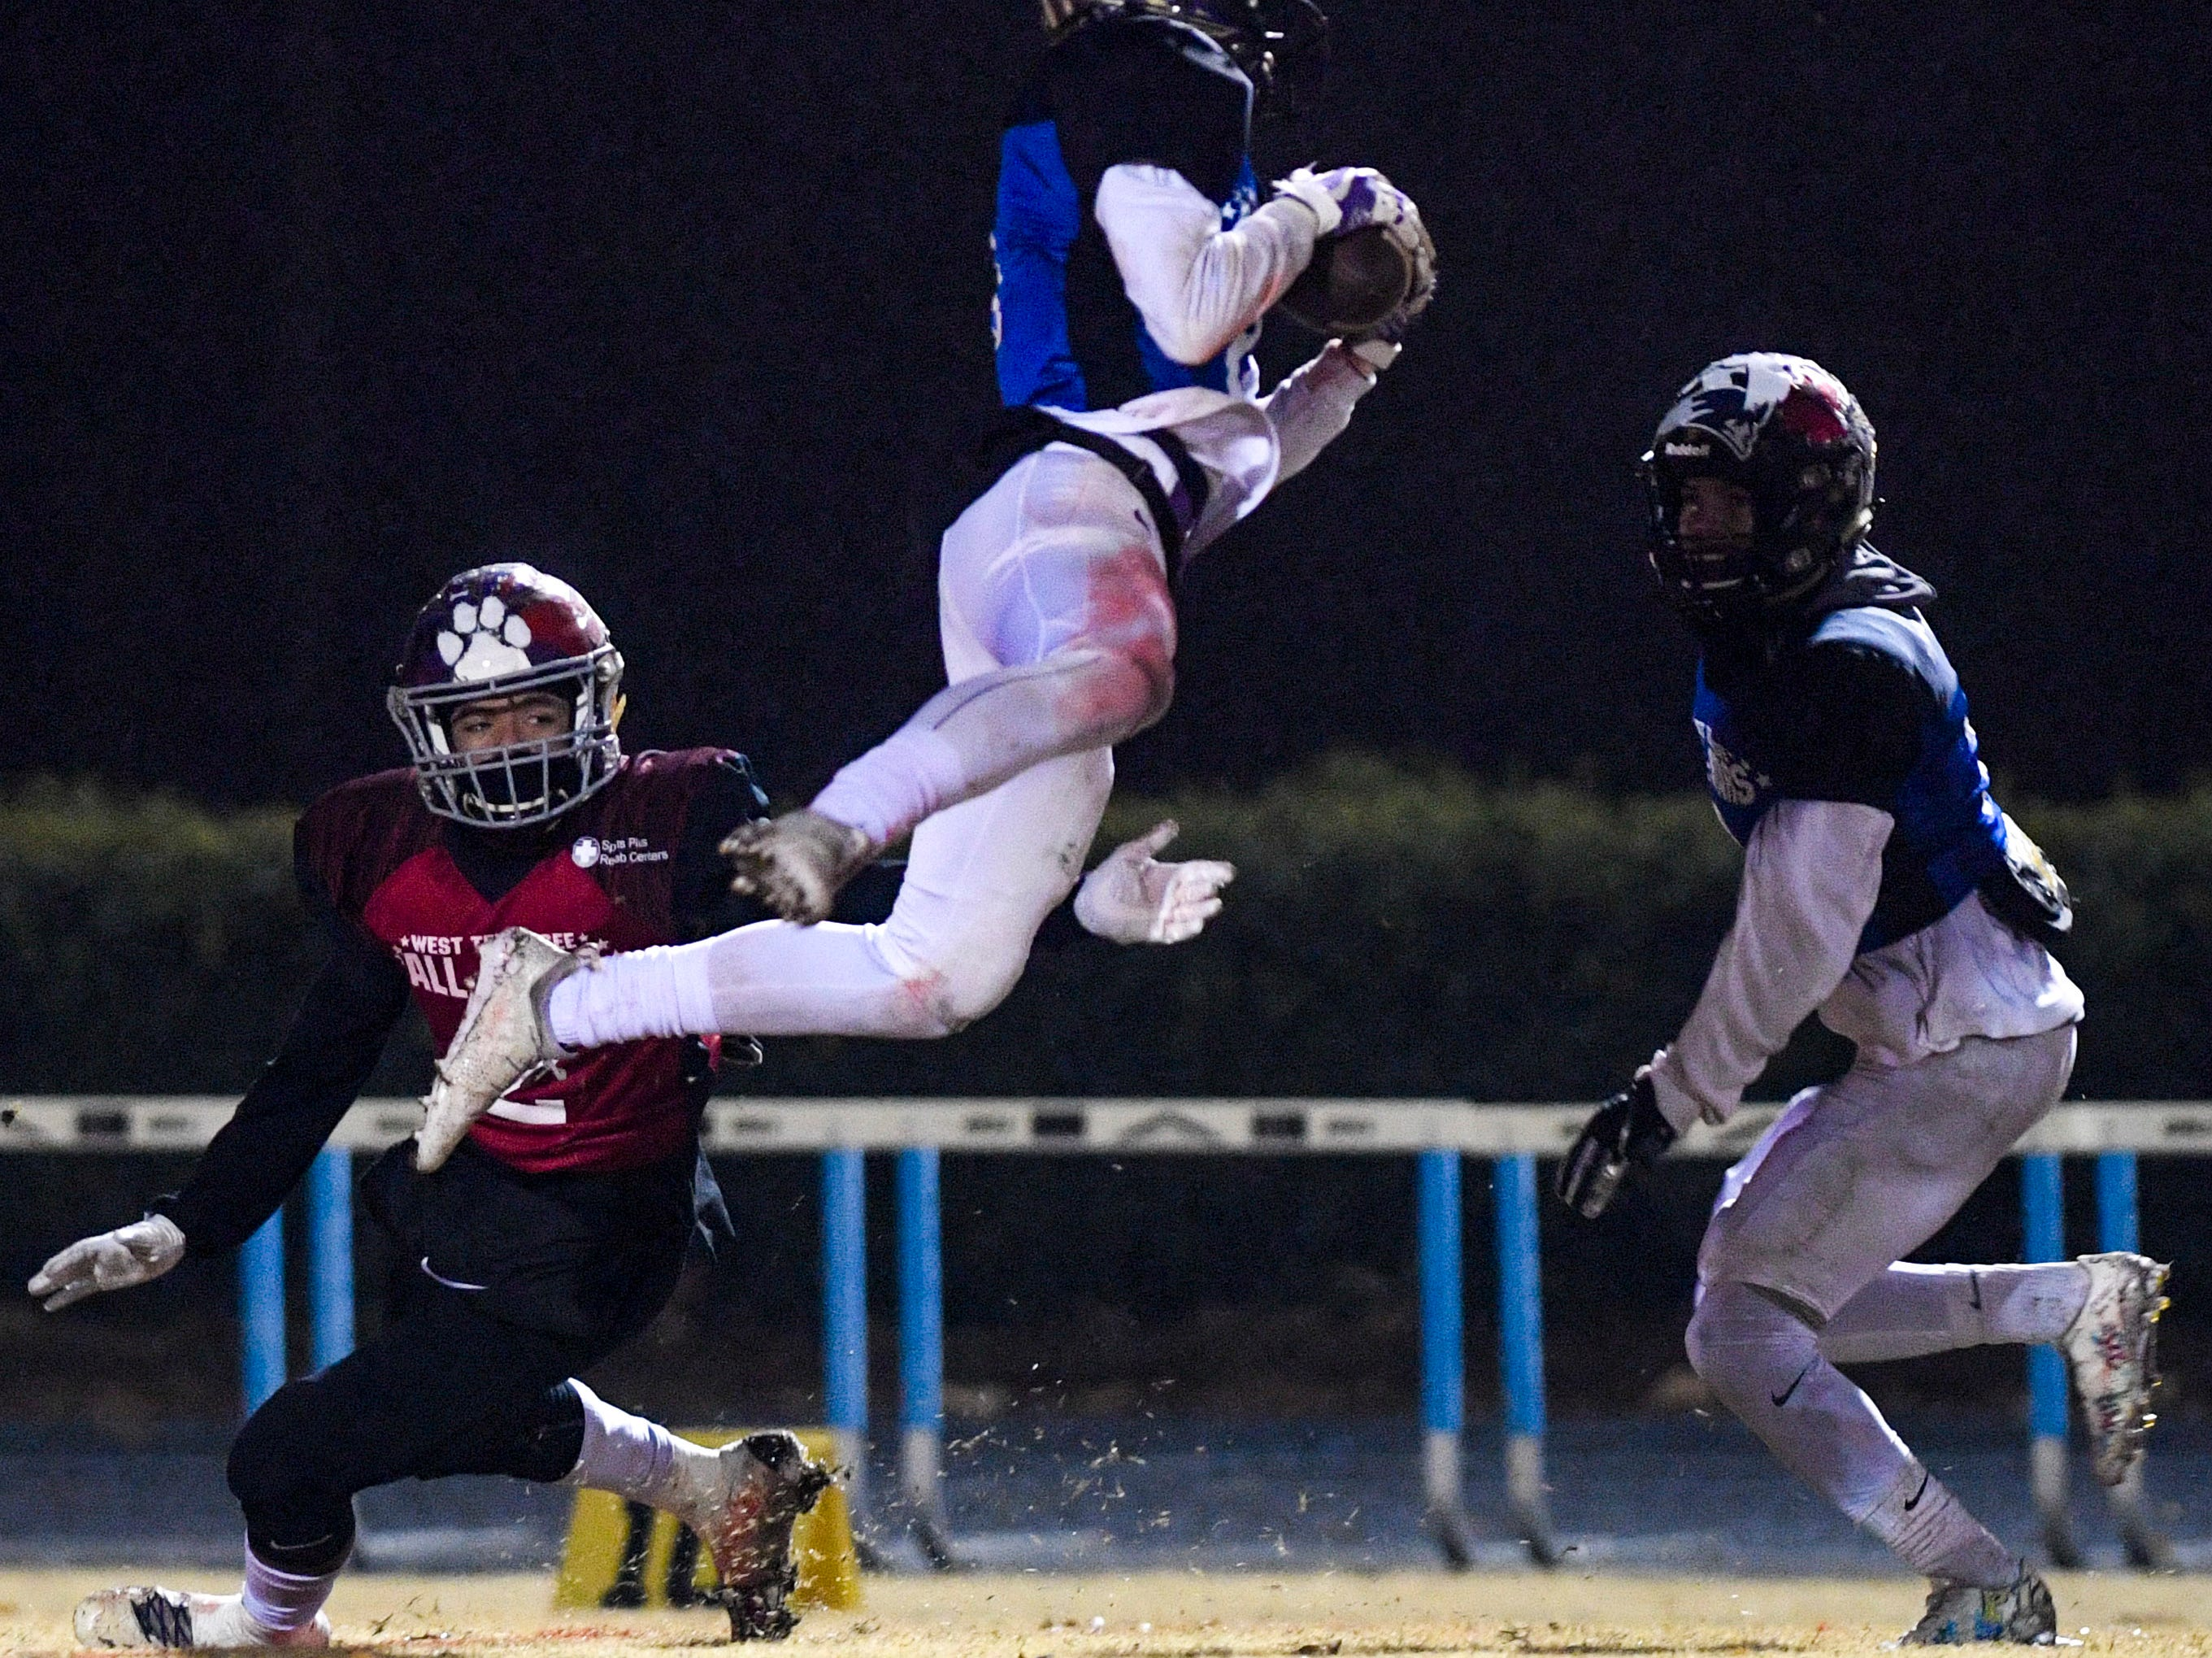 TCA's Riley Graves (8) jumps to intercept a pass intended for Milan's Dylan Mayberry (2) during the West Tennessee All-Star football game at University School of Jackson in Jackson, Tenn., on Friday, Dec. 7, 2018.